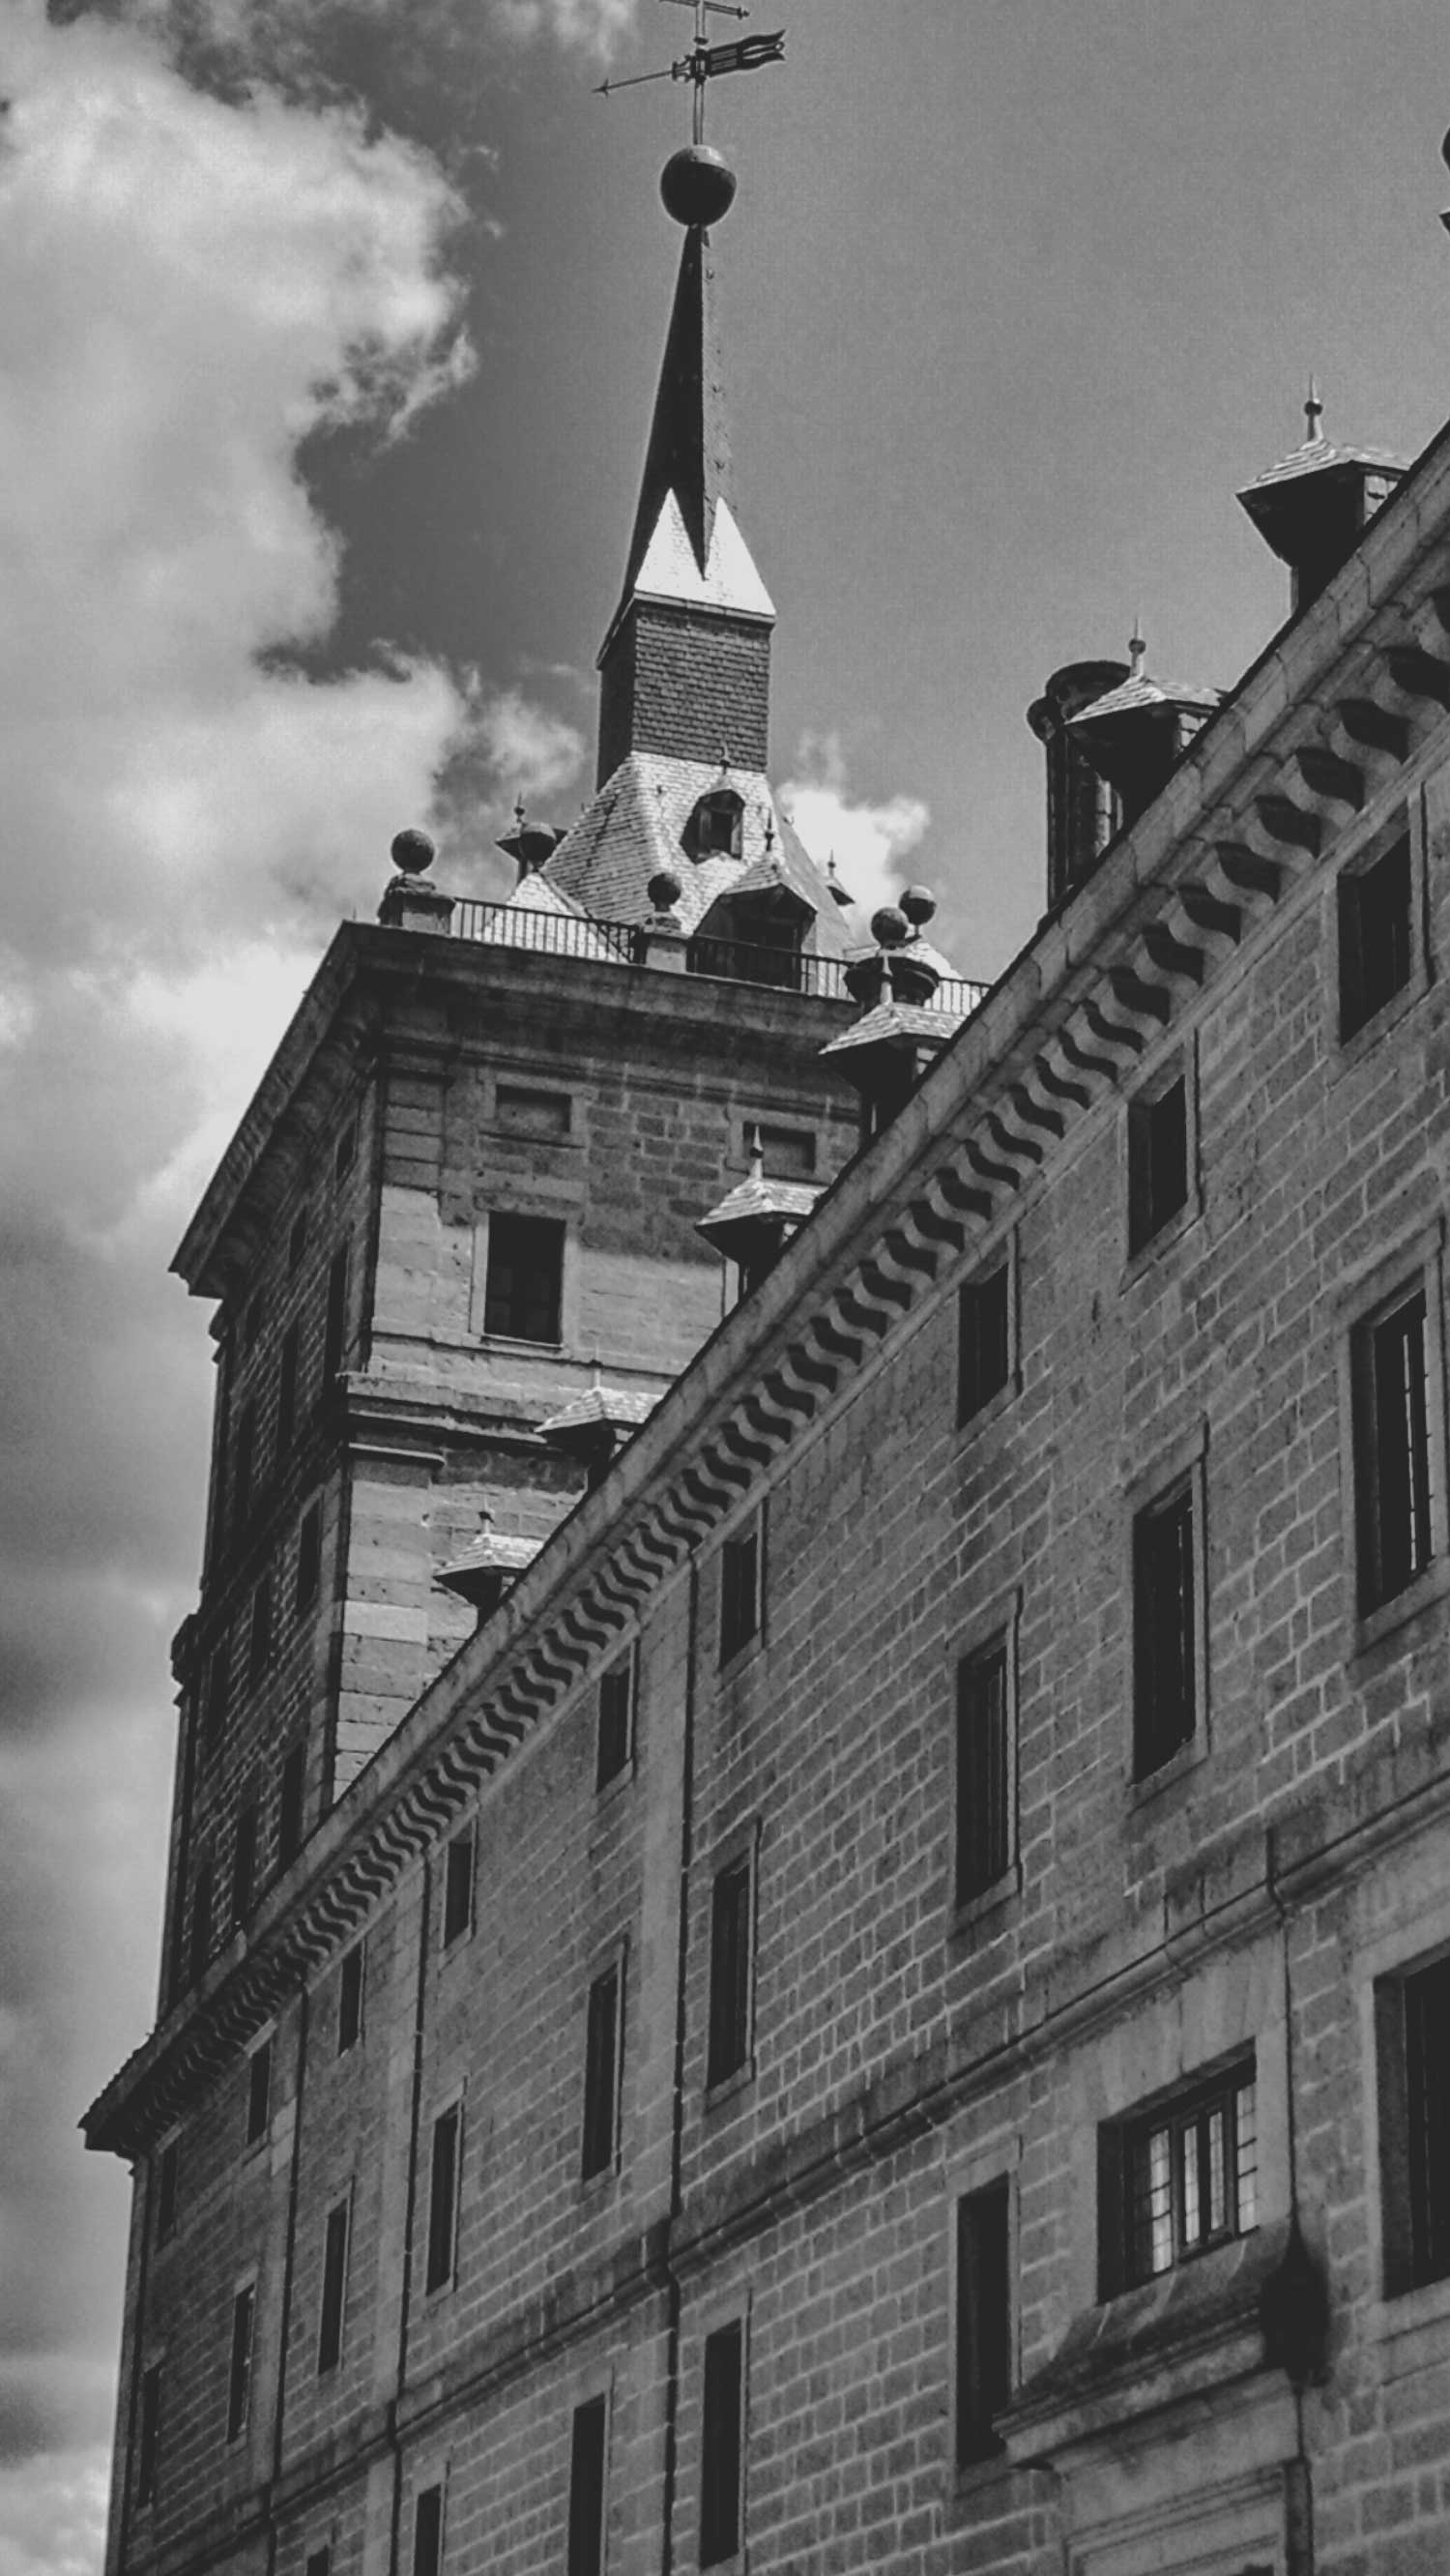 OG-monastery_el_escorial-Tower_Madrid_Spain-062015-WEB-1500.jpg